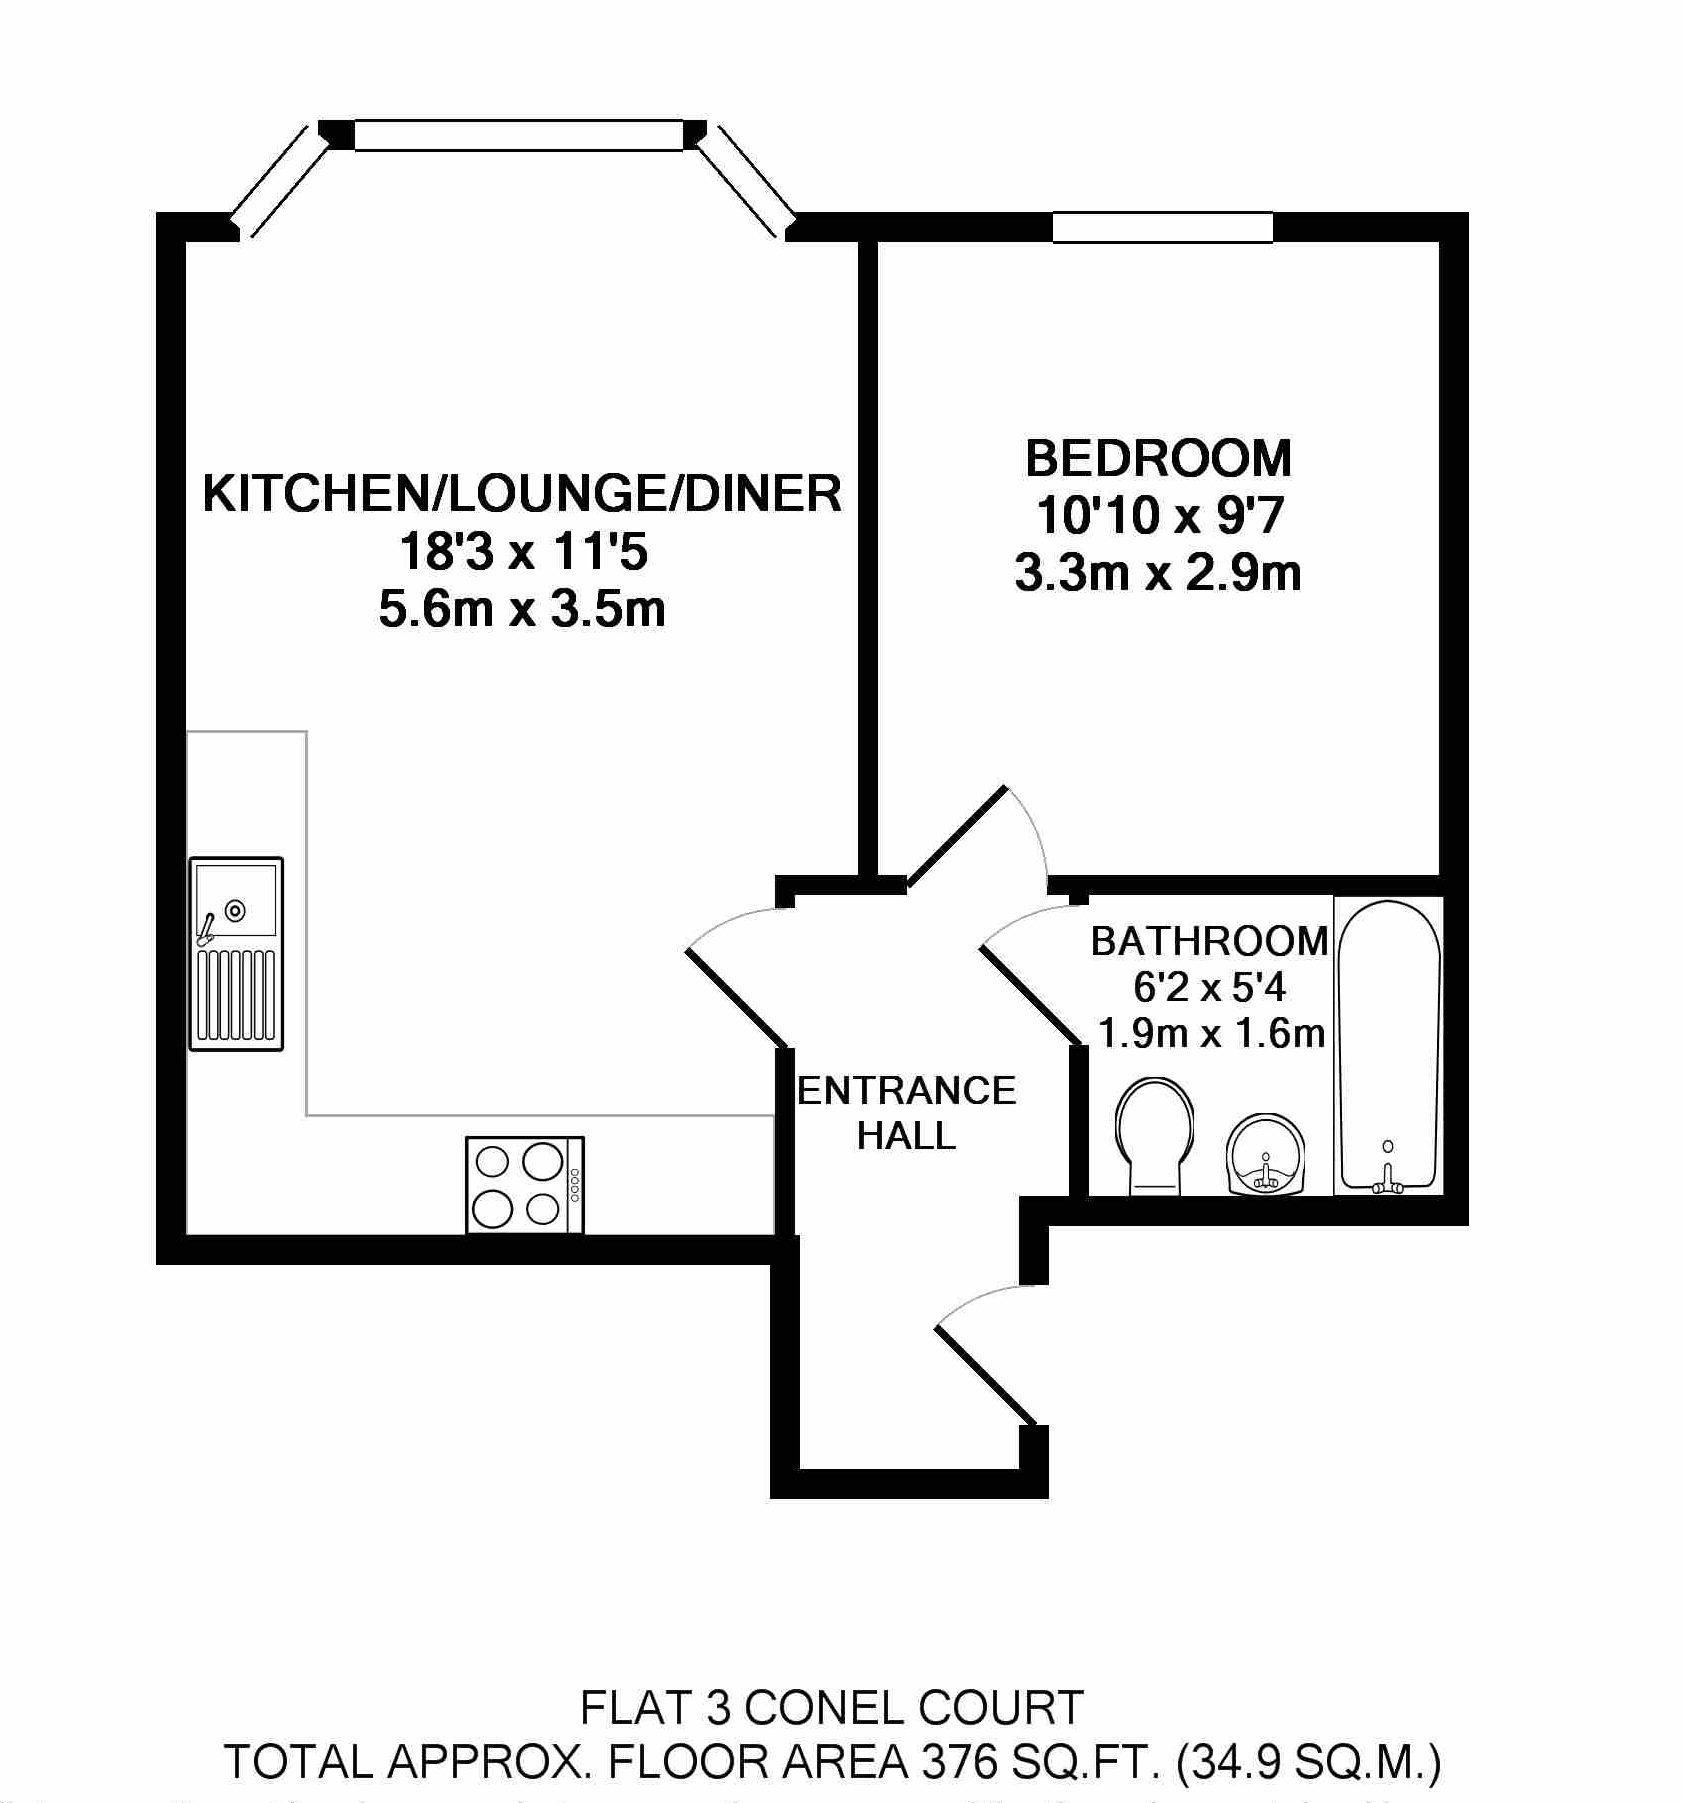 Flat 3 Conel Court FP near Bournemouth University